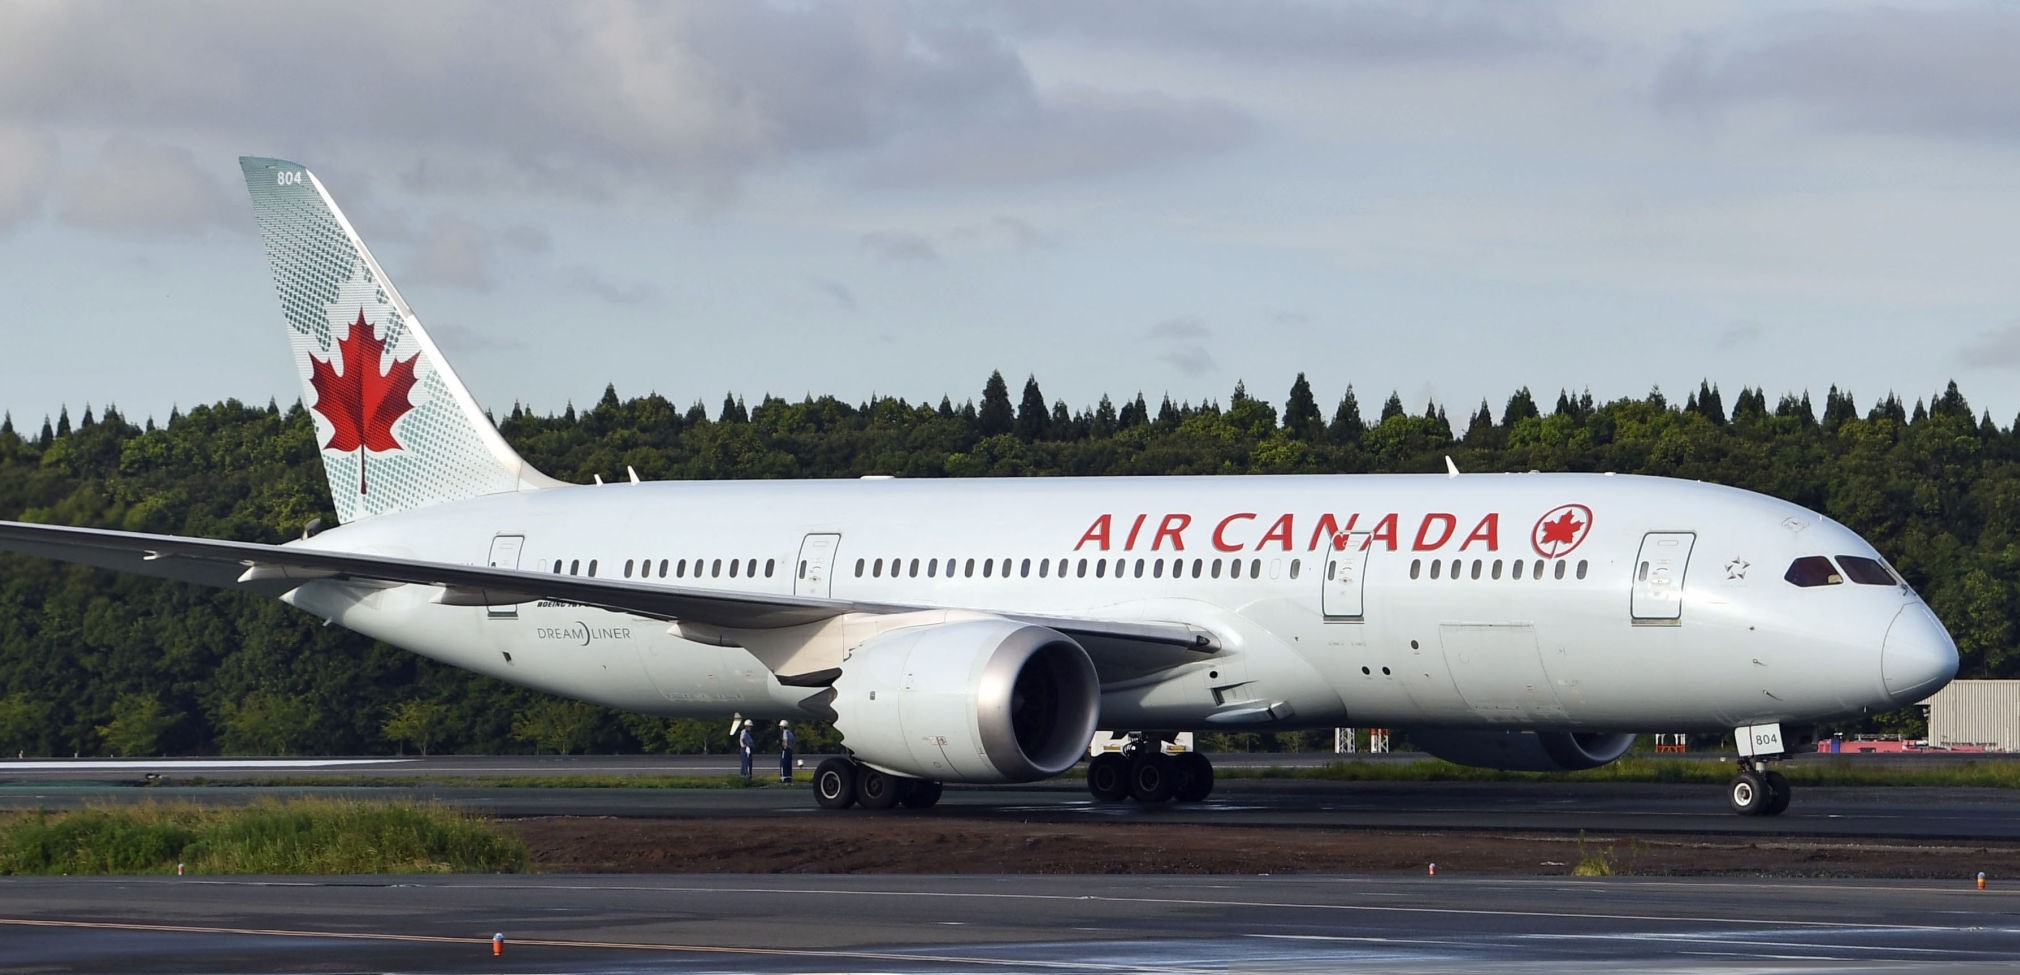 Air Canada: A lady awakens alone on board parked plane